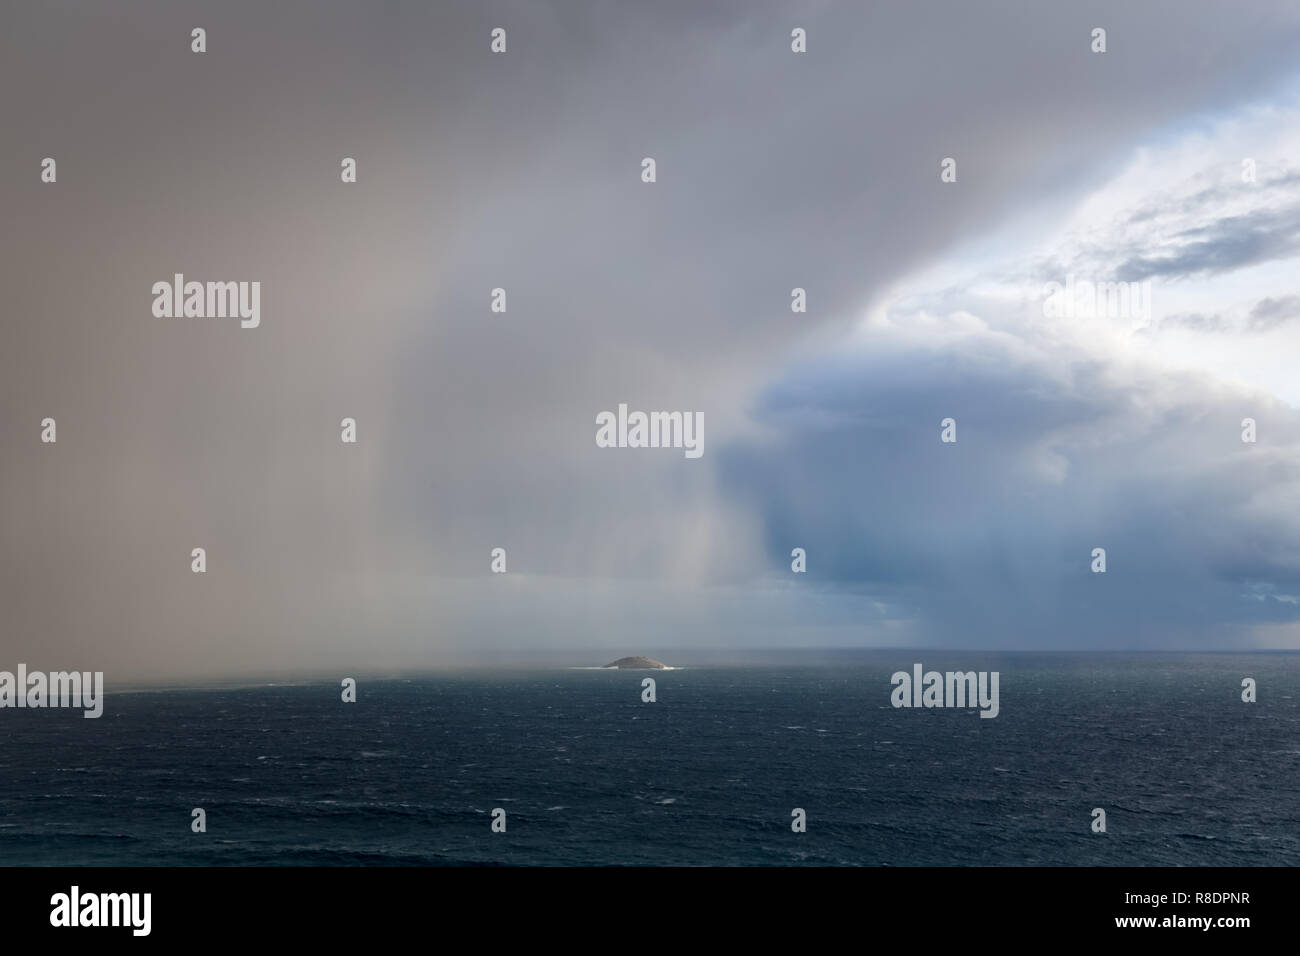 Storm Clouds Over The Southern Ocean - Stock Image